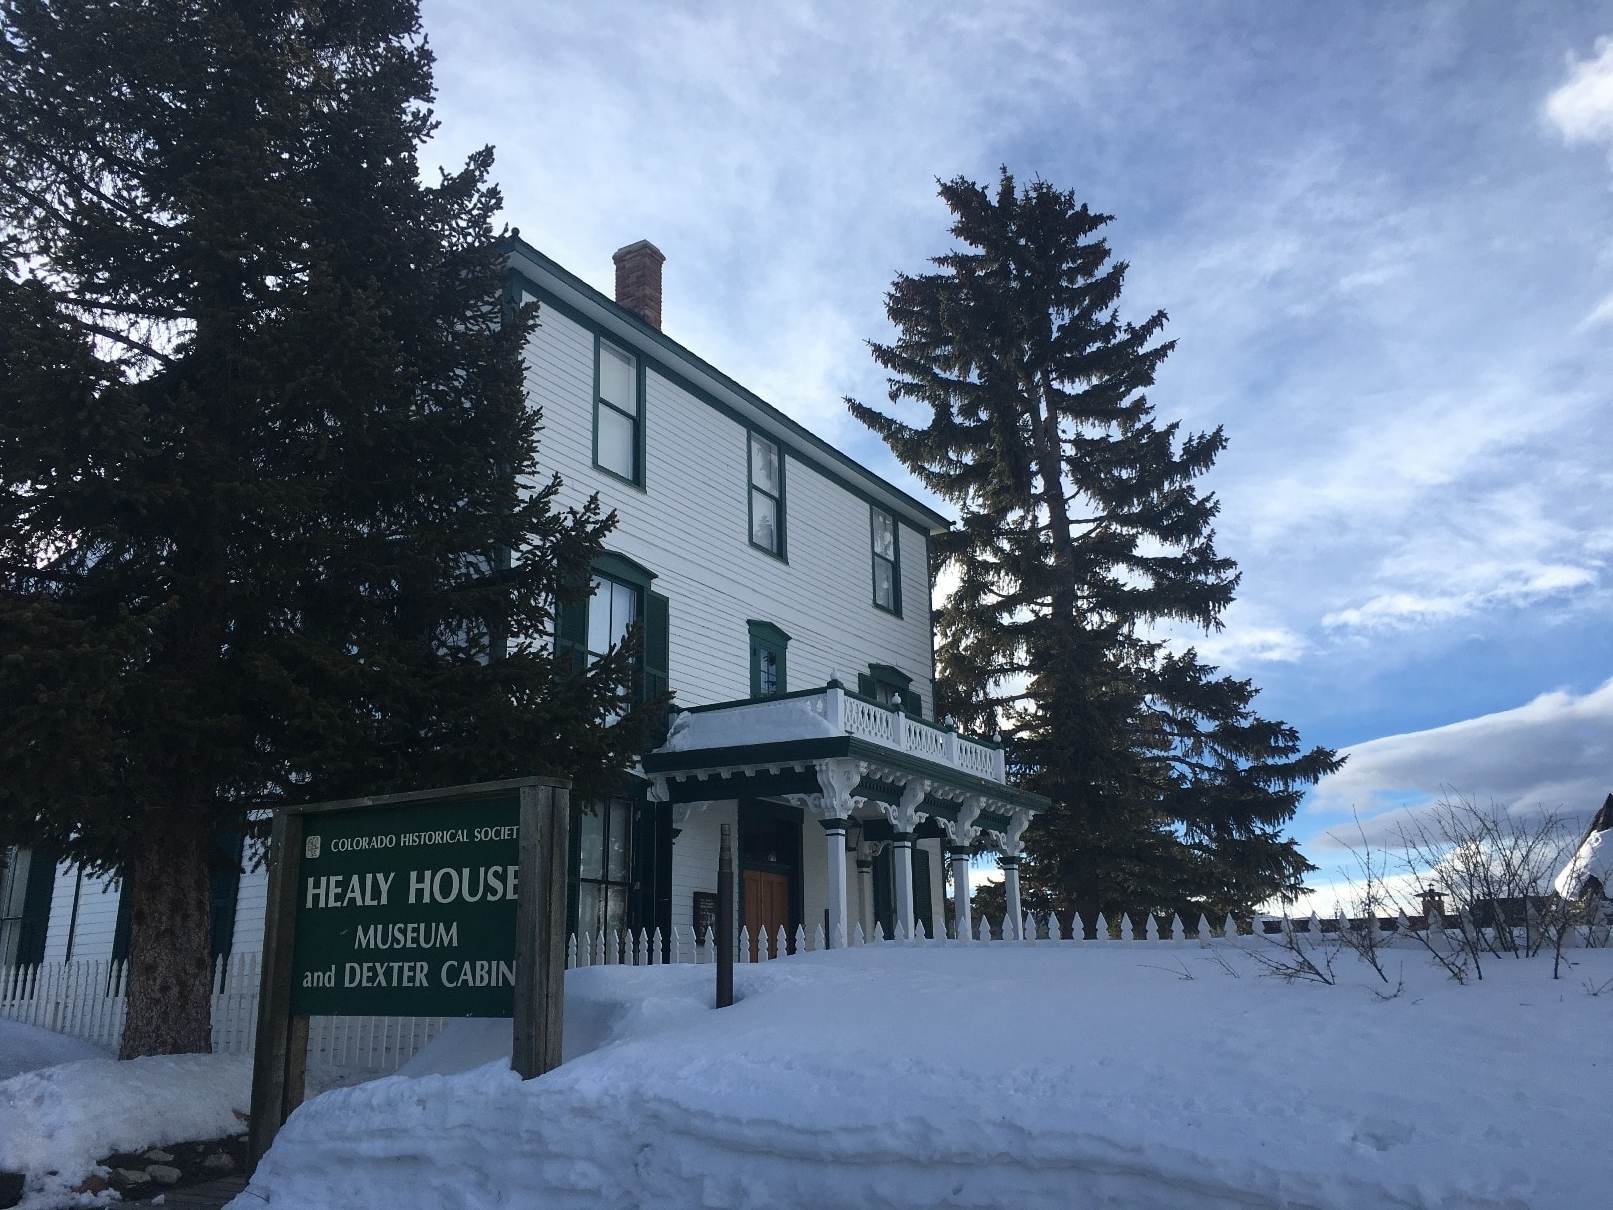 Healy House Museum and Dexter Cabin - Leadville Colorado